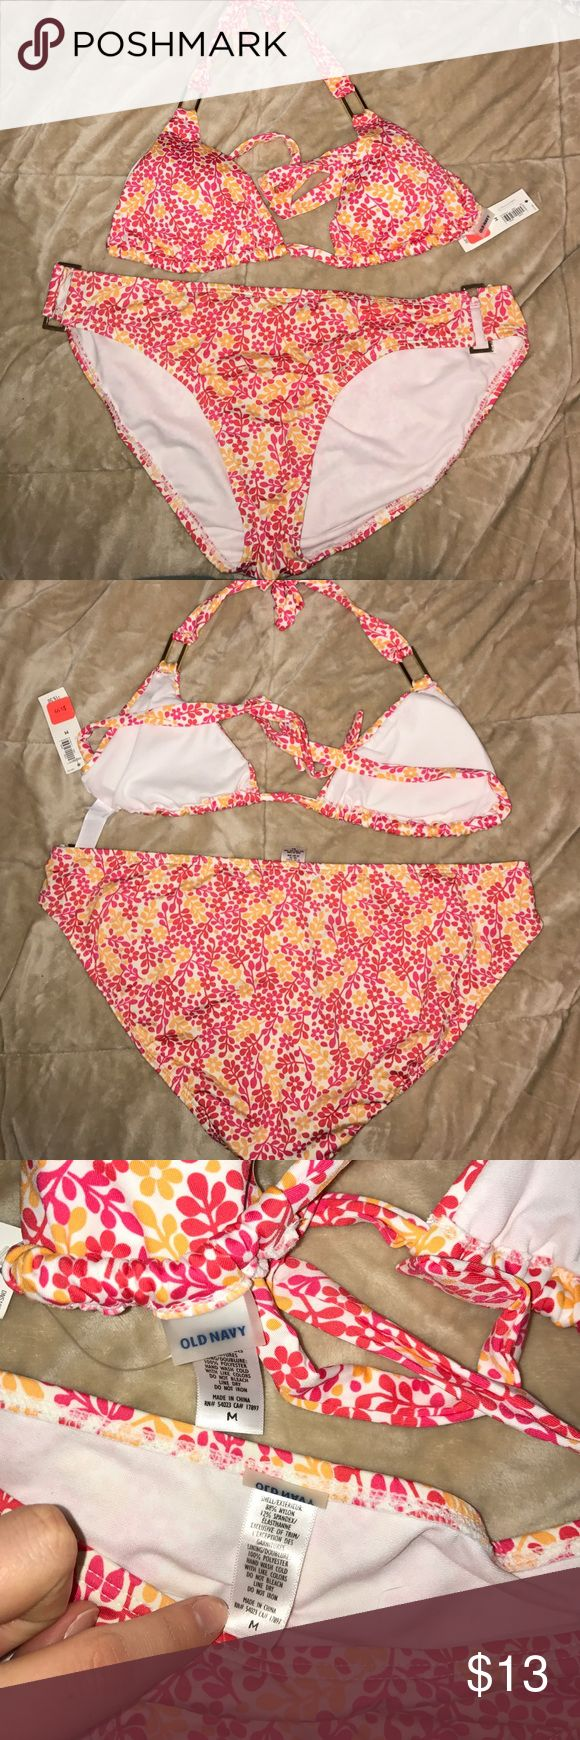 Old Navy orange and pink/red flower suit Bikini with a triangle top with gold rectangles. Has removable bra pads. The bottoms have the matching gold rectangles. It's a white suit with orange, pink, and red flowers. Old Navy Swim Bikinis